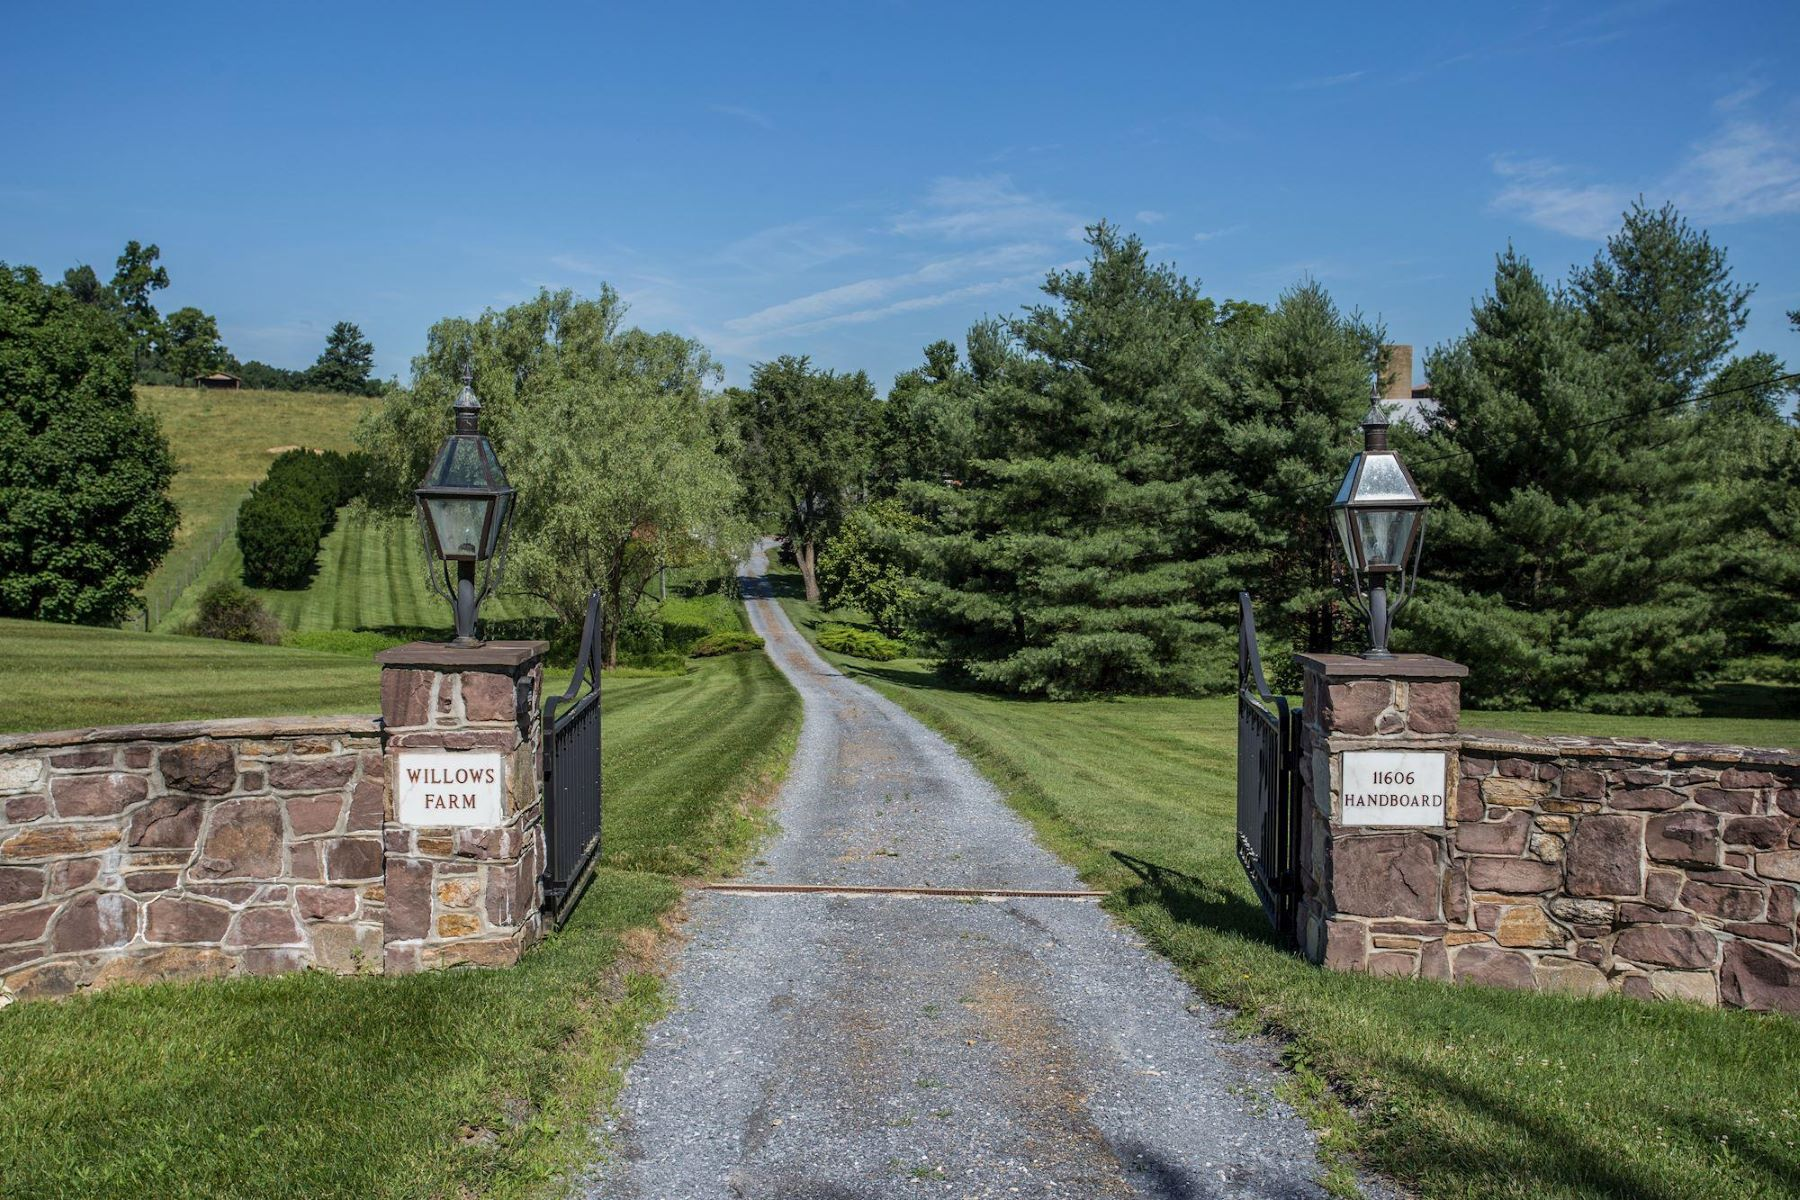 Single Family Homes for Sale at 11606 Handboard Rd Union Bridge, Maryland 21791 United States